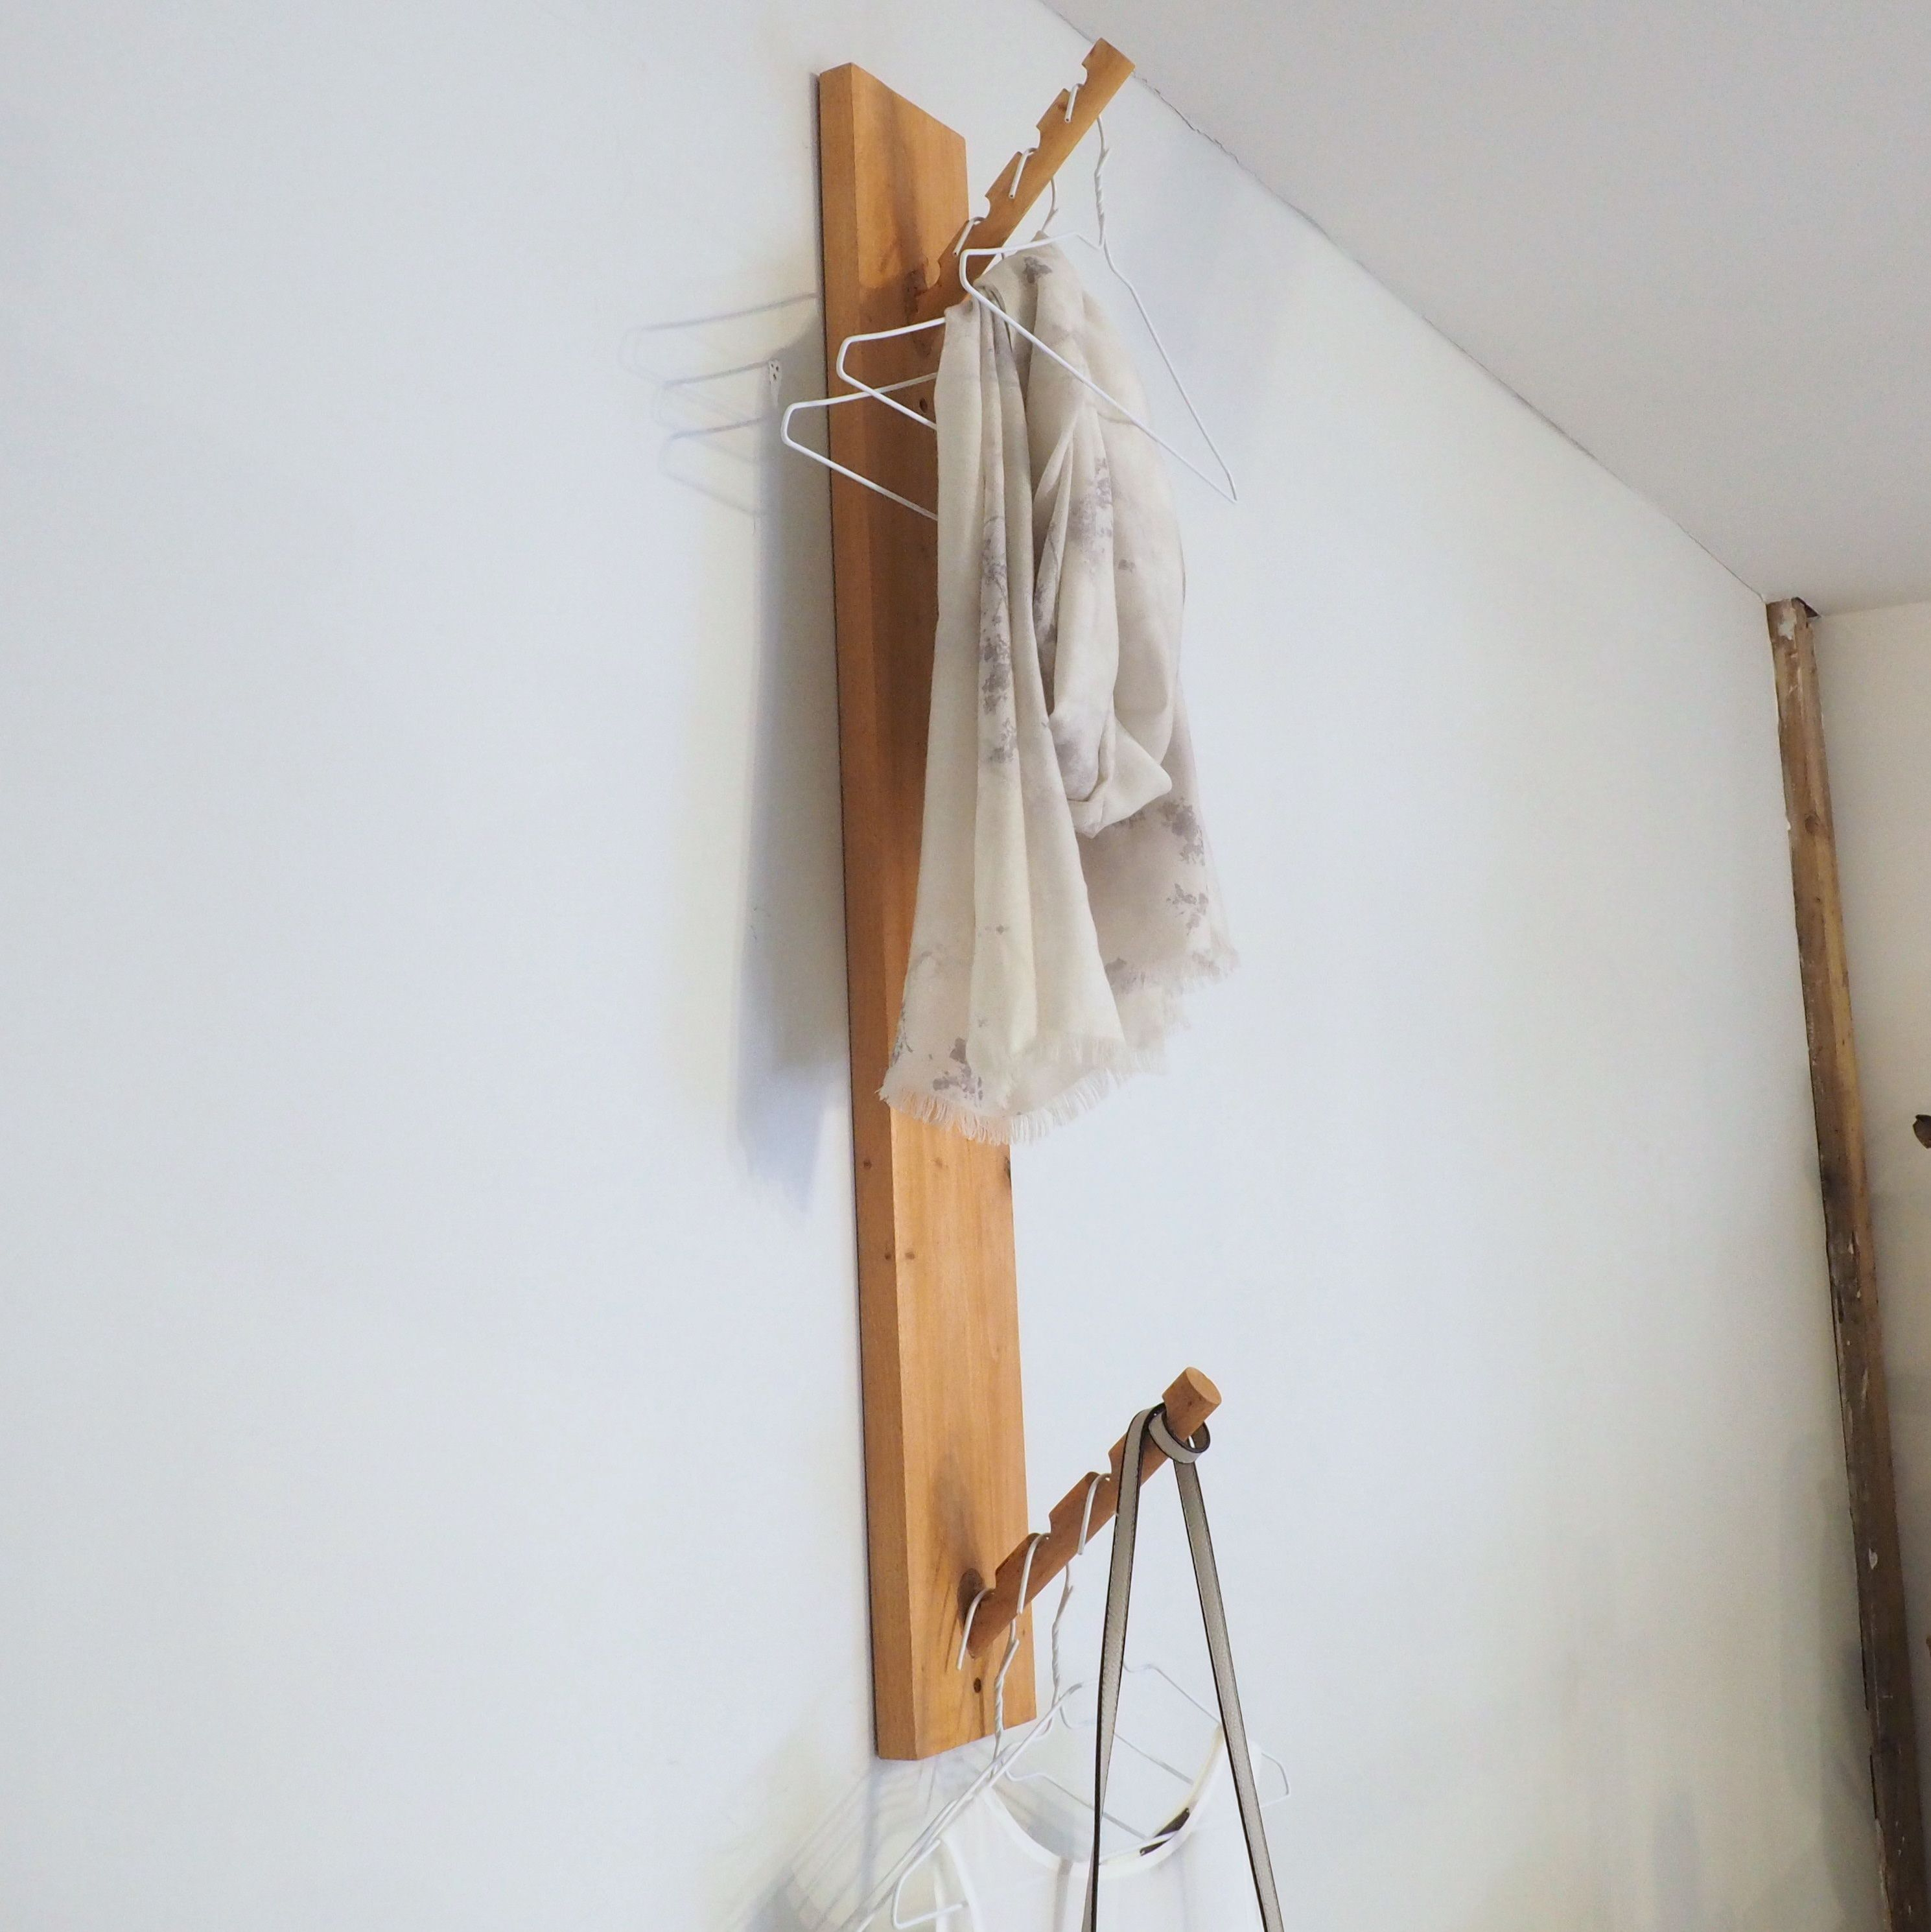 portis clothes diy ikea drying rack hanging branch wooden clothing nz